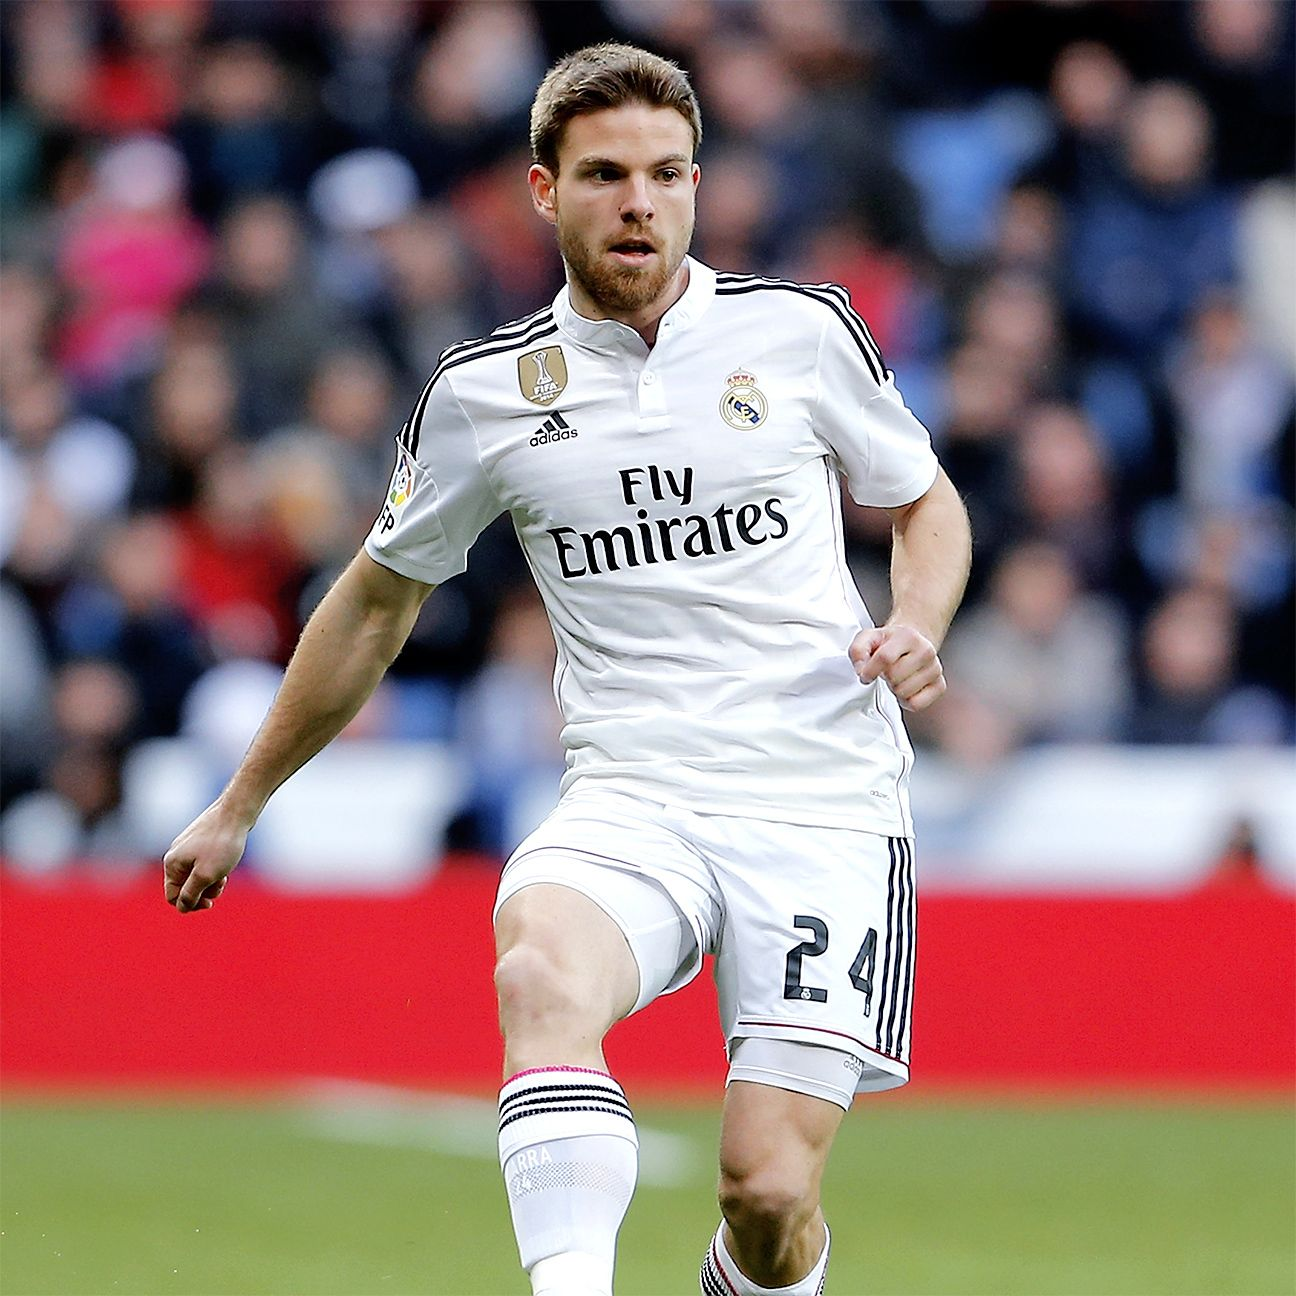 The Bernabeu was not exactly enthusiastic to see Asier Illarramendi replace Isco late in the second half of Real Madrid's 1-1 draw with Villarreal.